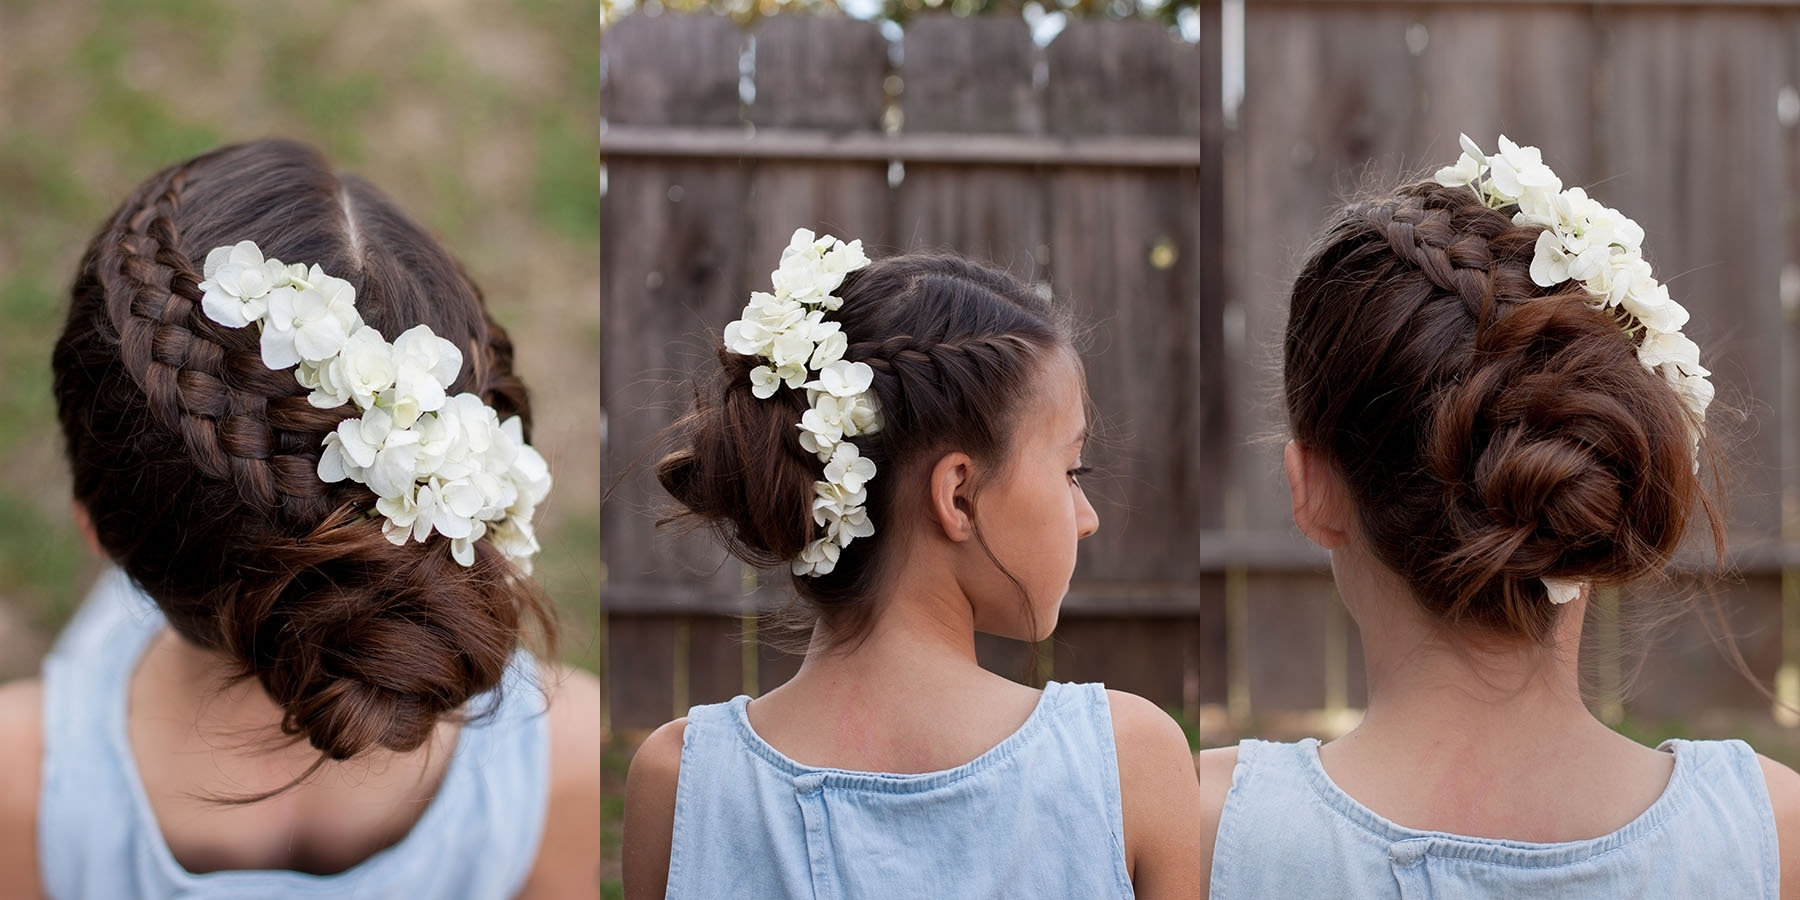 Cute Girls Hairstyles Within Recent Braids And Flowers Hairstyles (View 13 of 15)